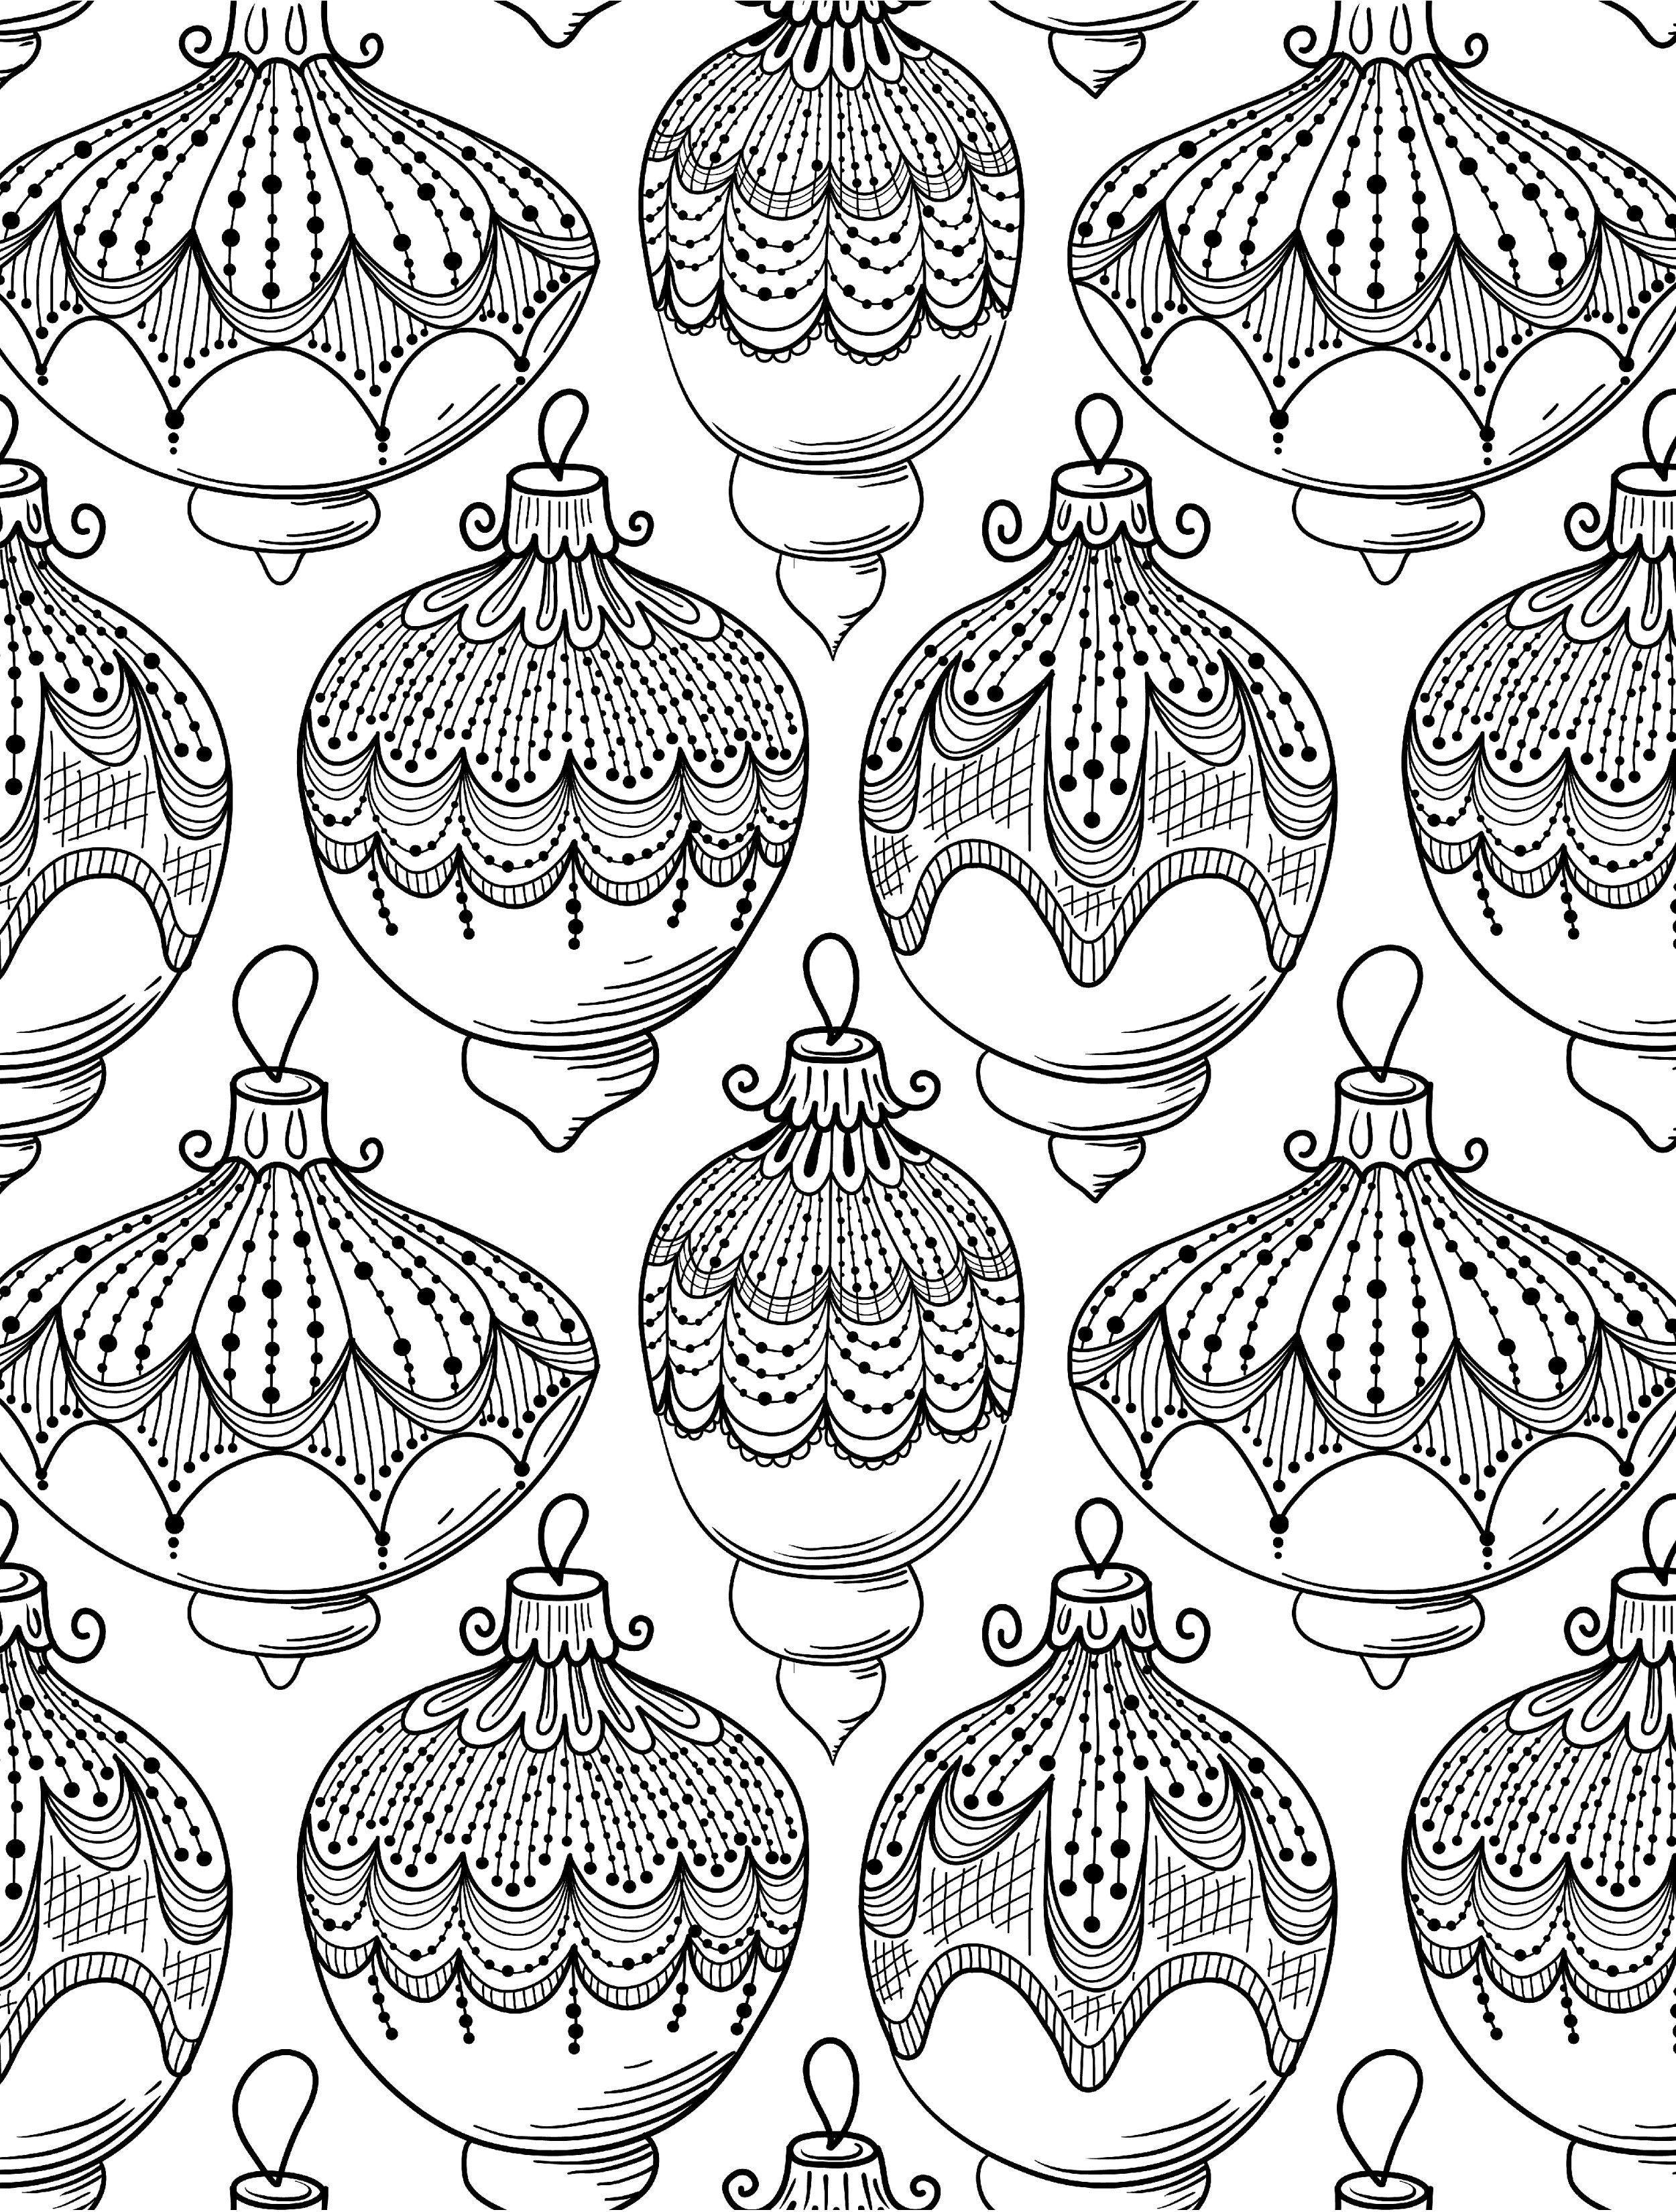 10 Free Printable Holiday Adult Coloring Pages | Adult And - Free Printable Holiday Coloring Pages